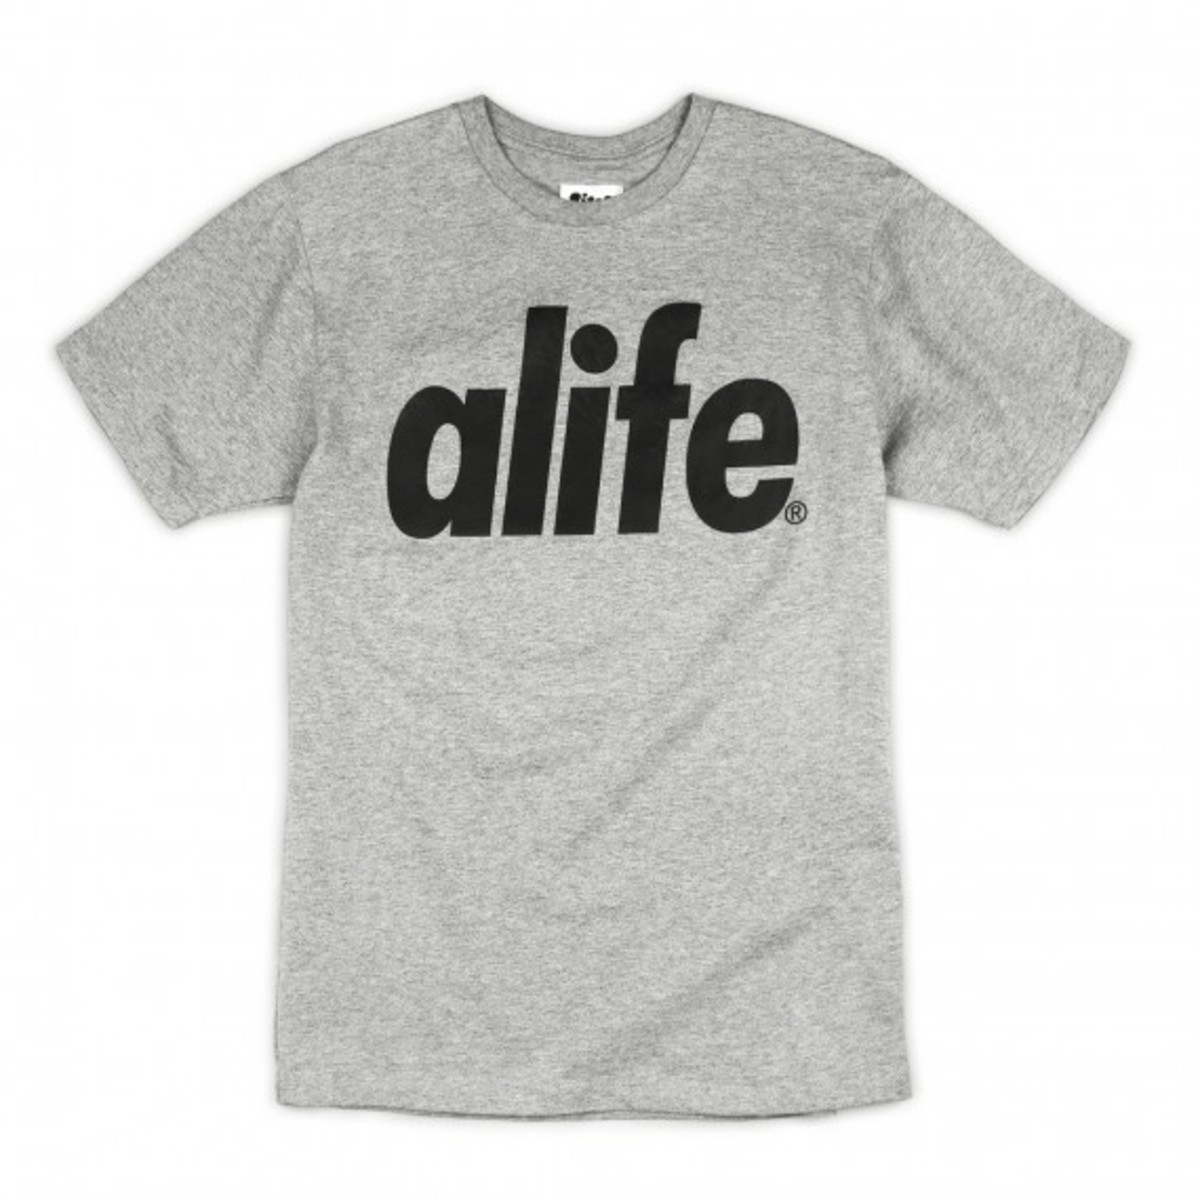 alife-tshirts-accessories-fall-2011-01